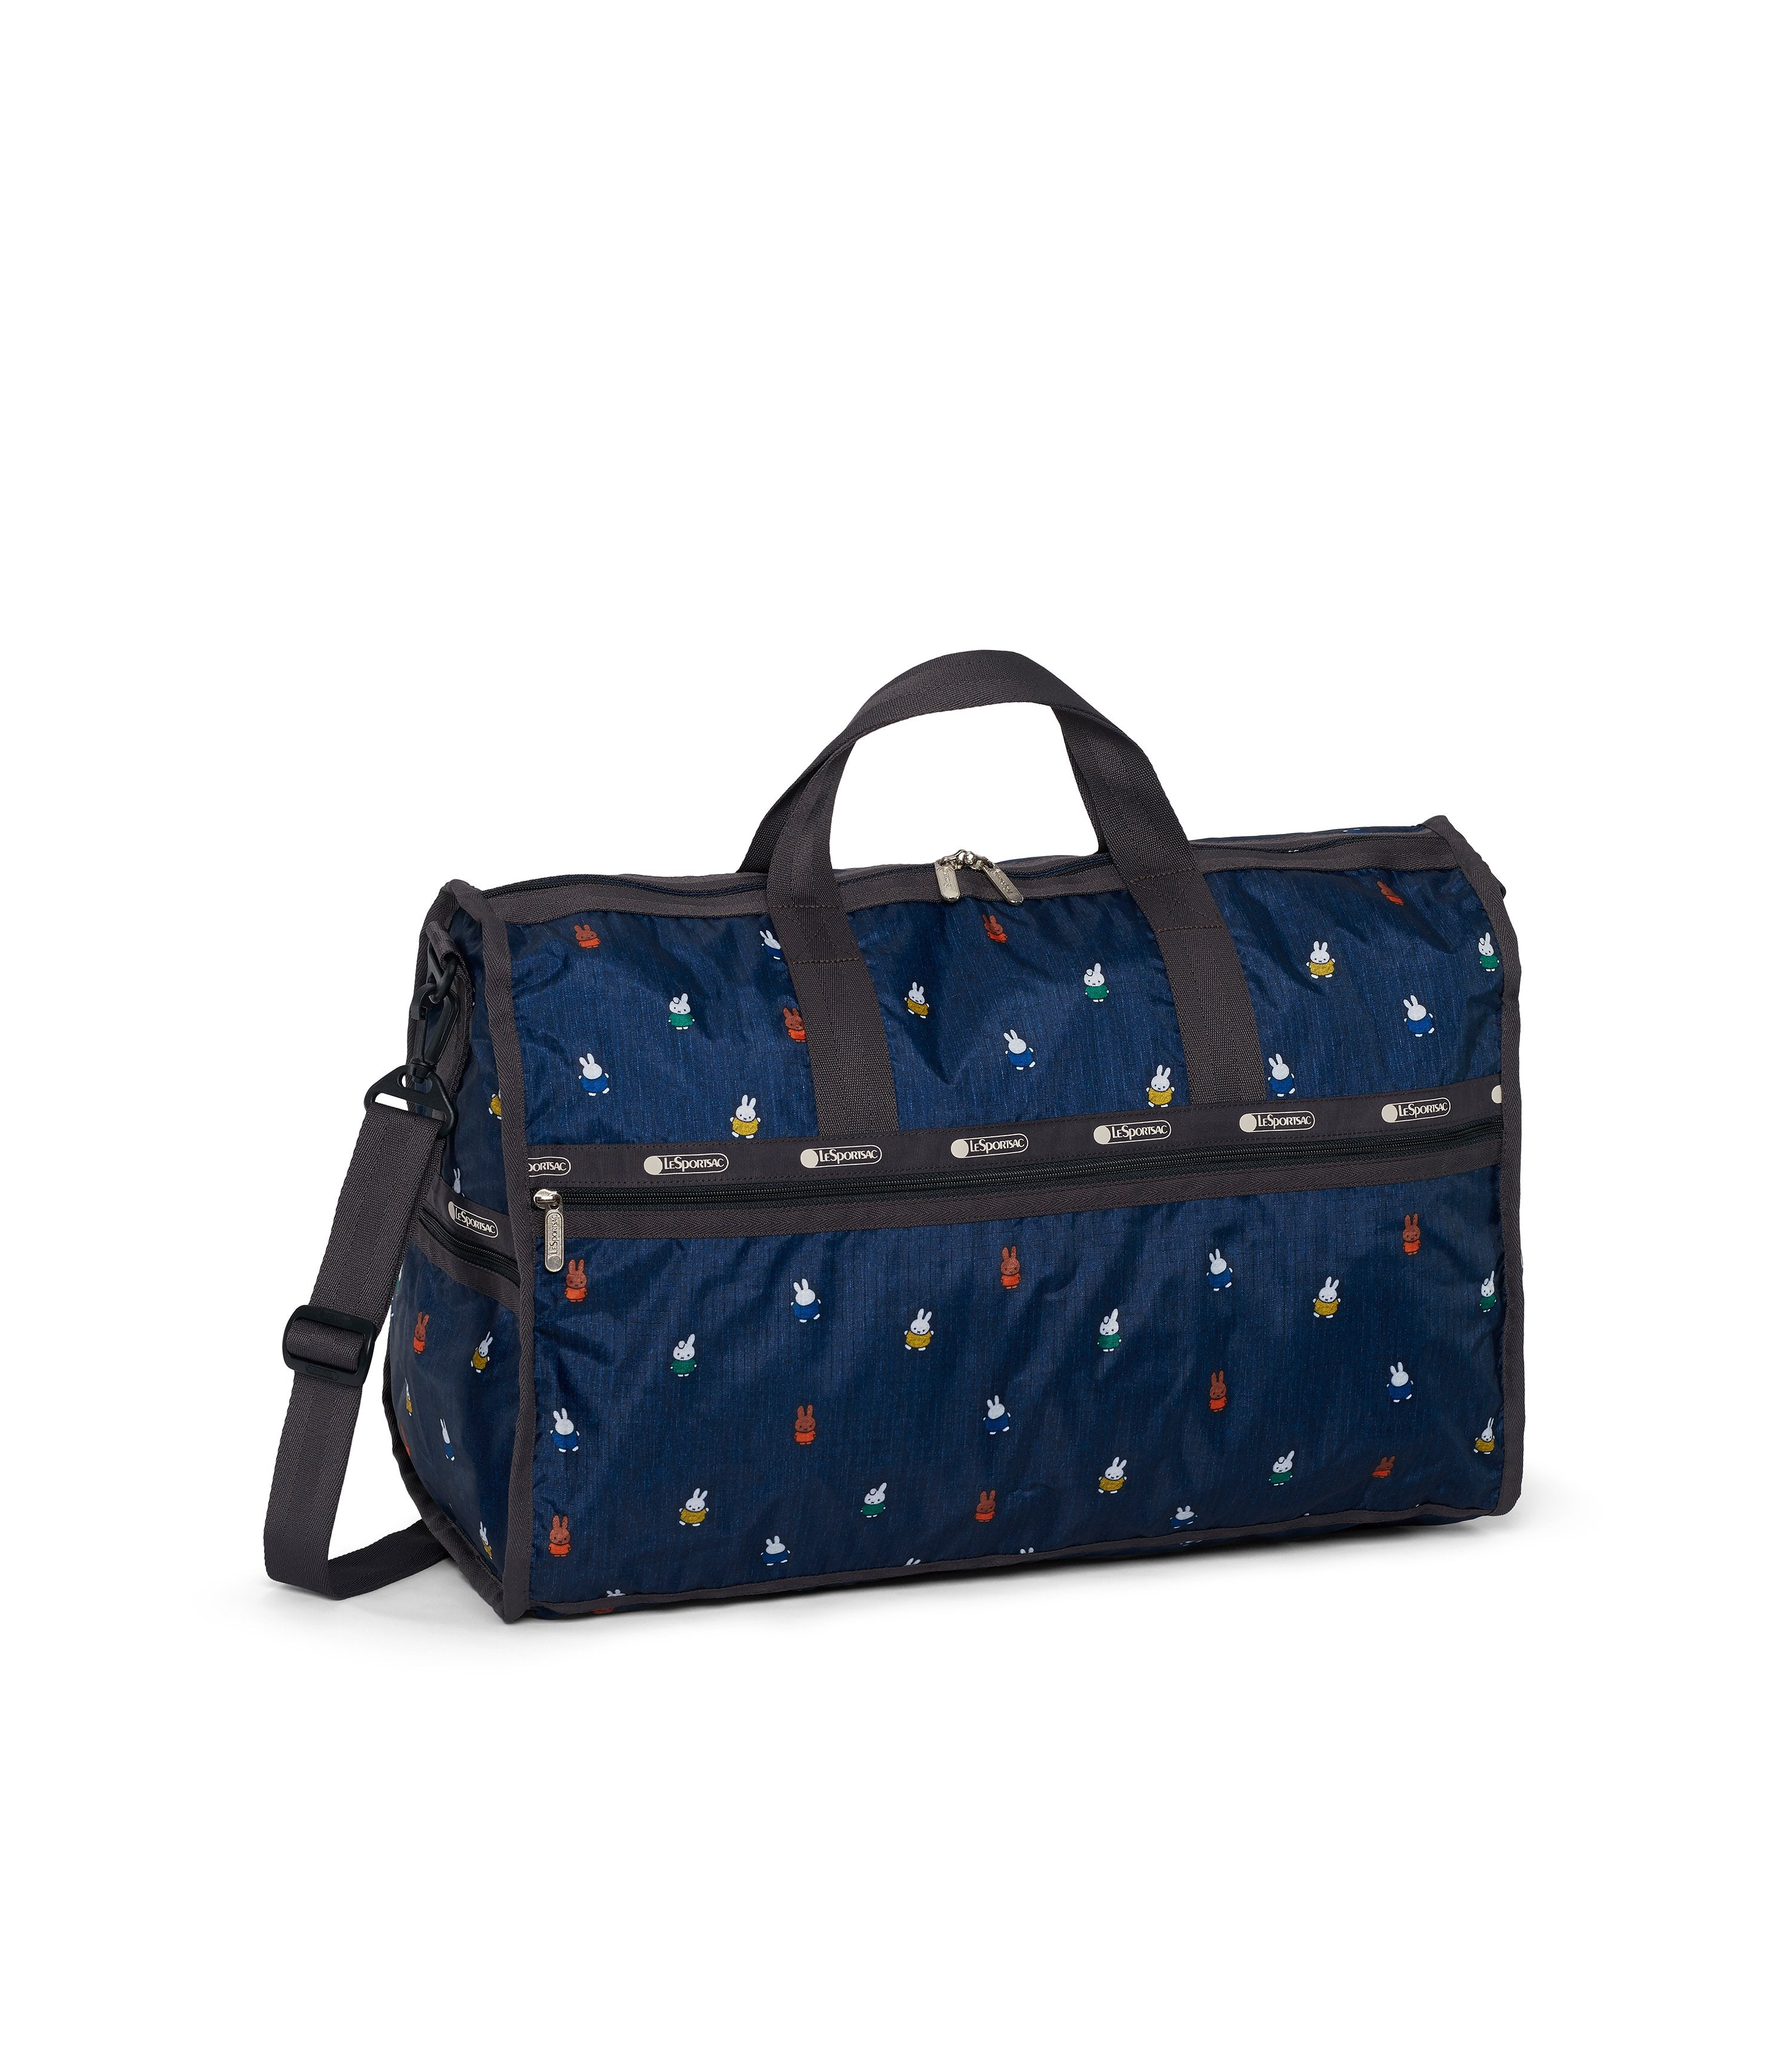 Dick Bruna - LeSportsac Large Weekender - Duffle - Miffy and Friends - Navy -  Back View